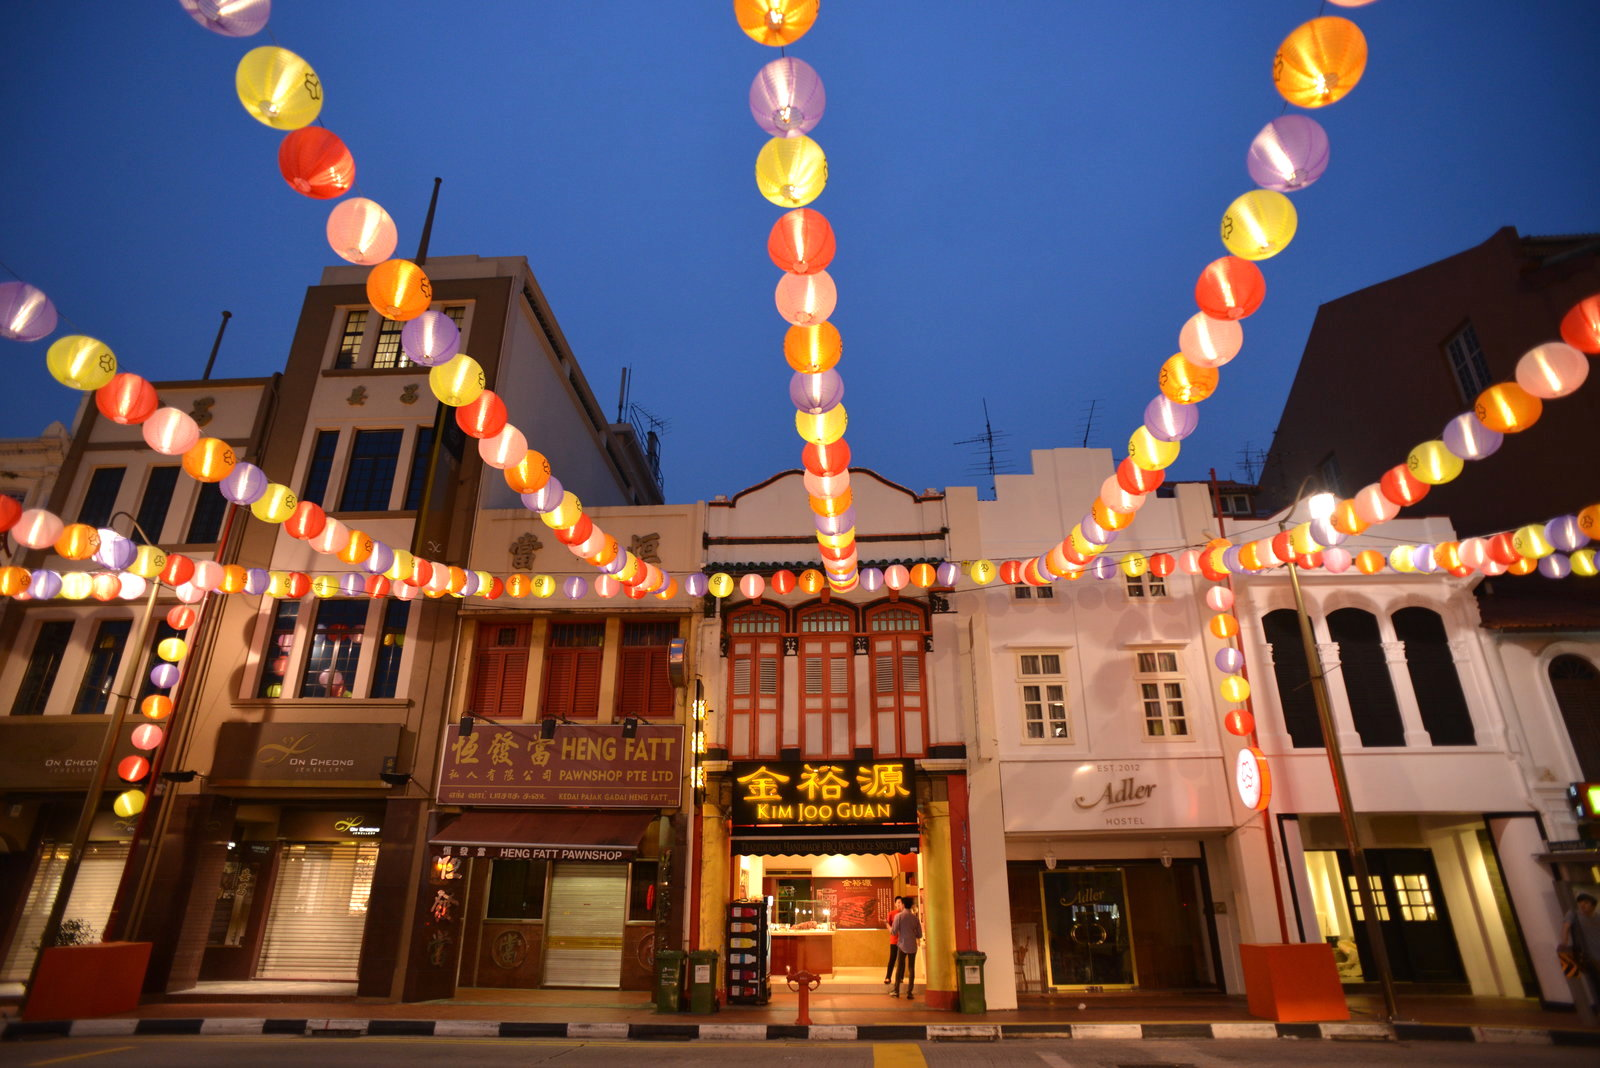 Mid-autumn festival decorations